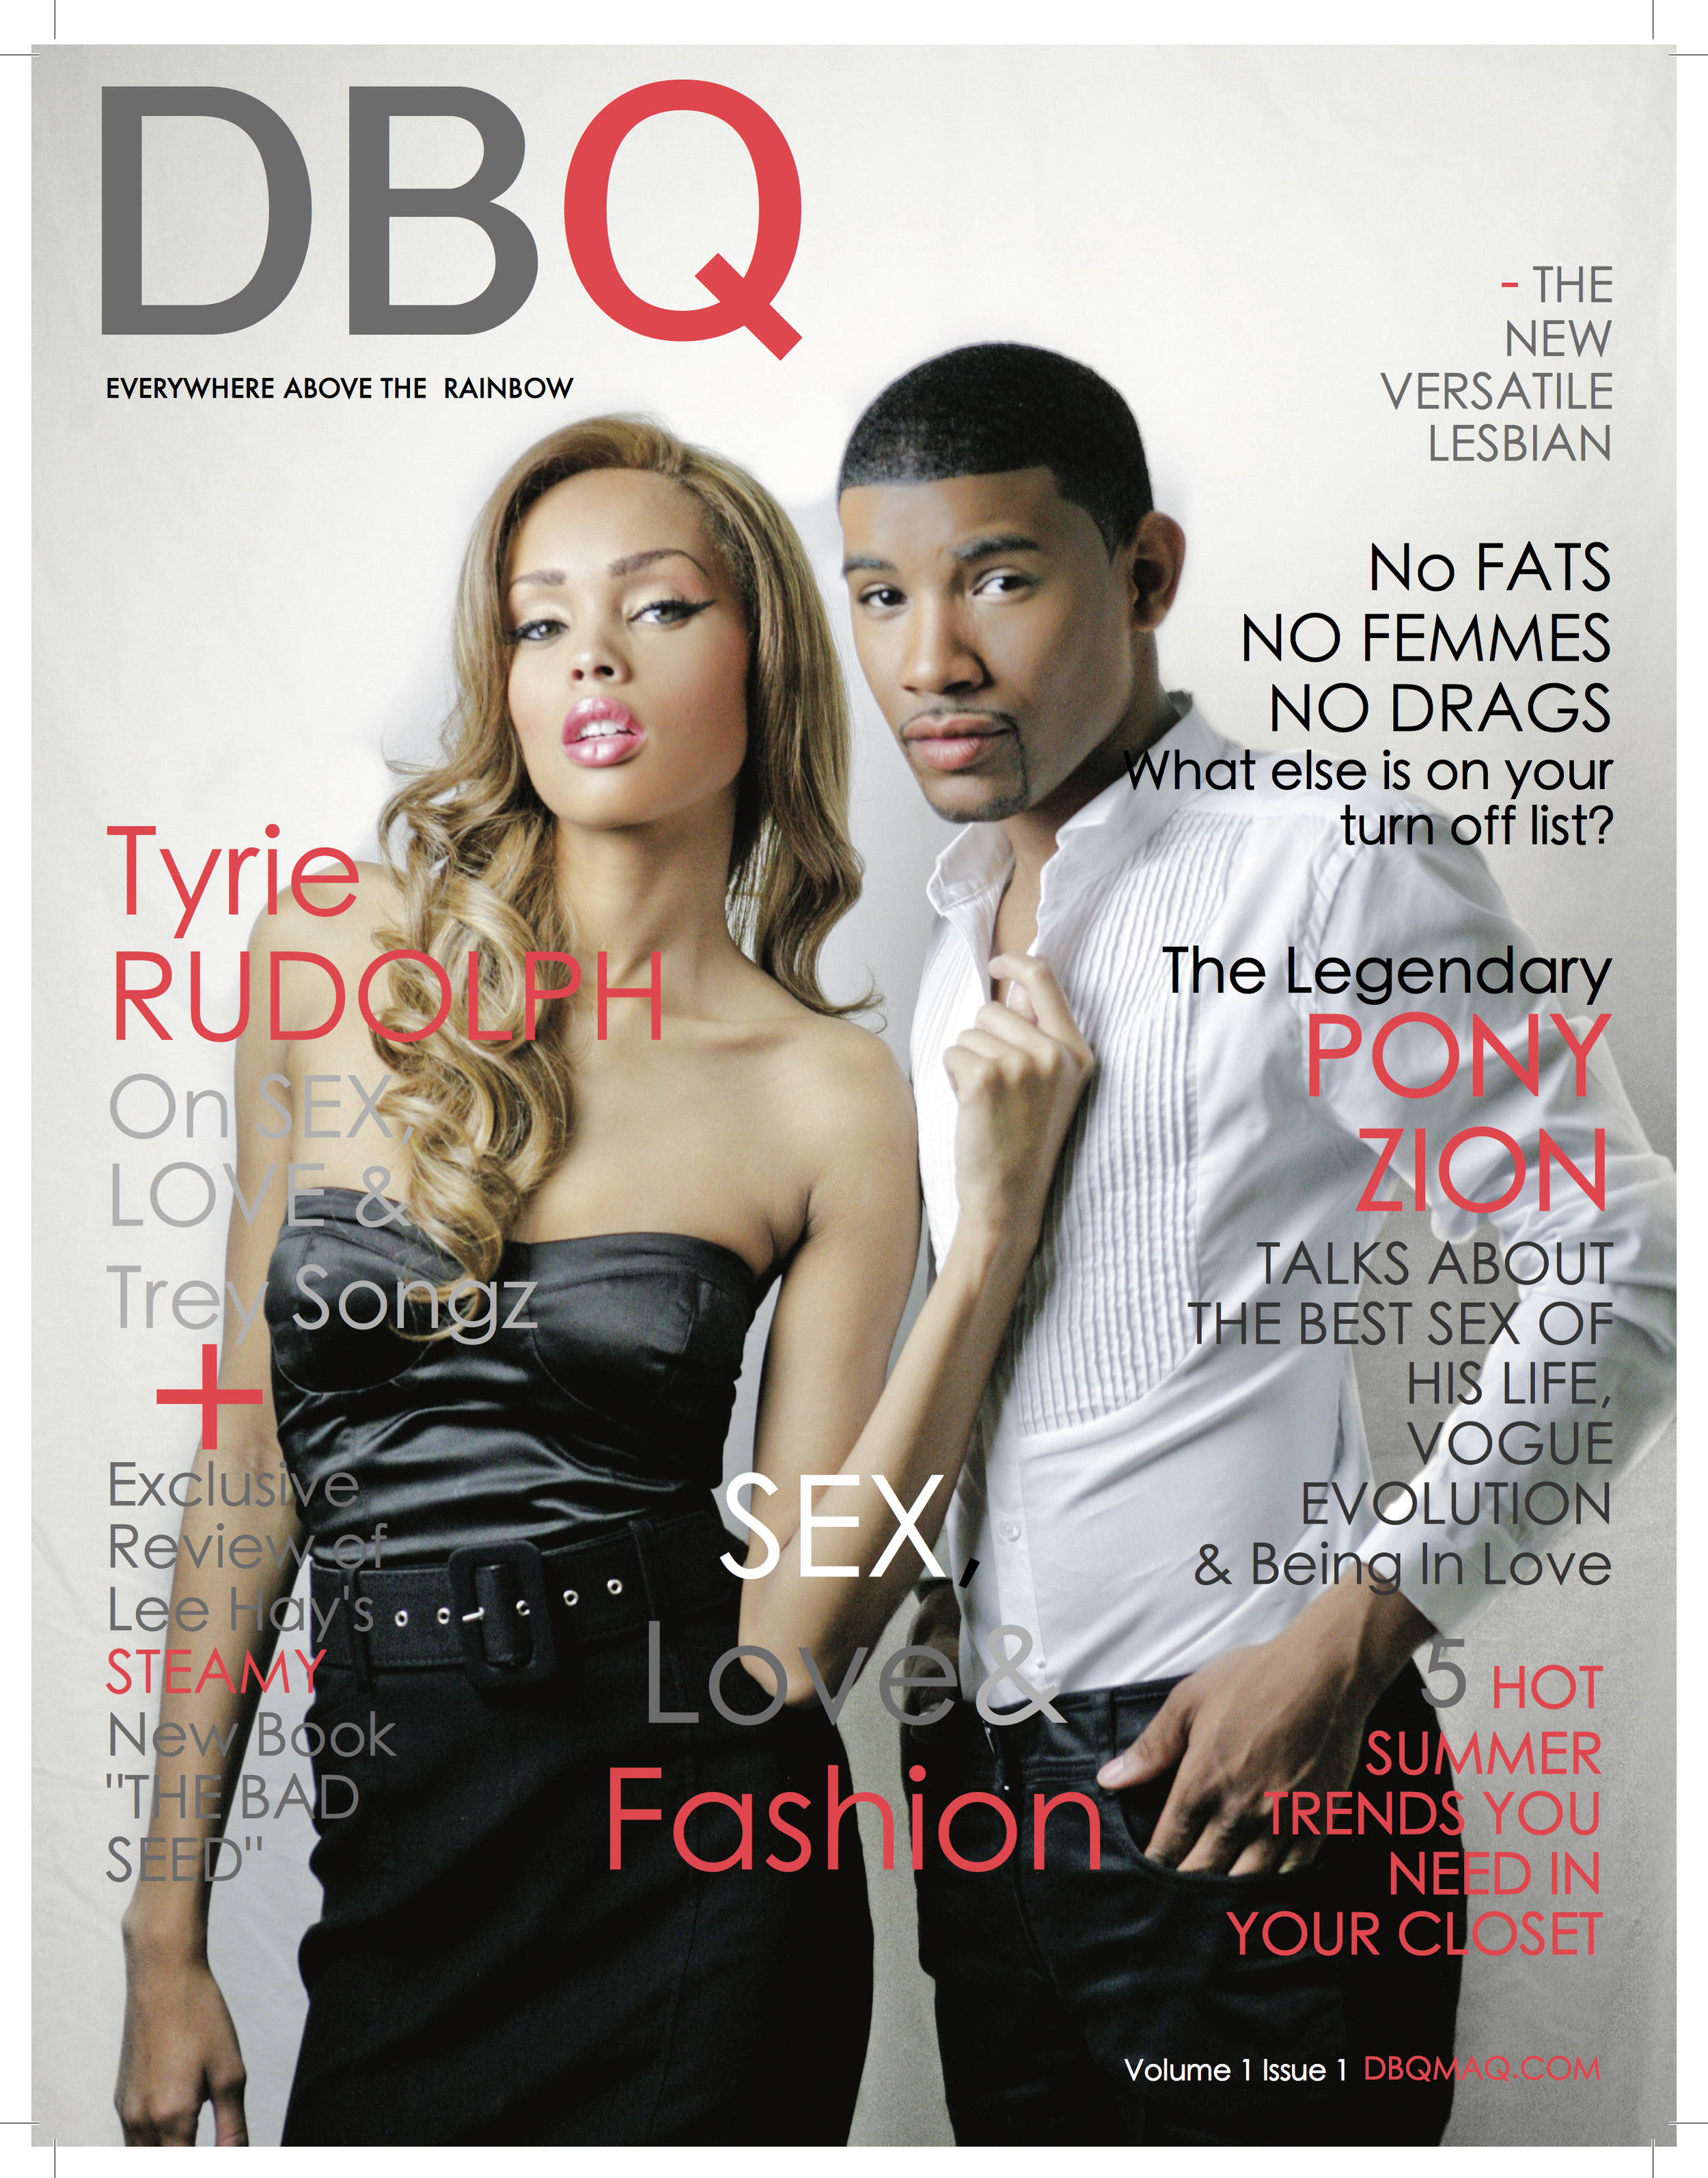 DBQ Magazine JUNE 2011 1ST COVER .jpg